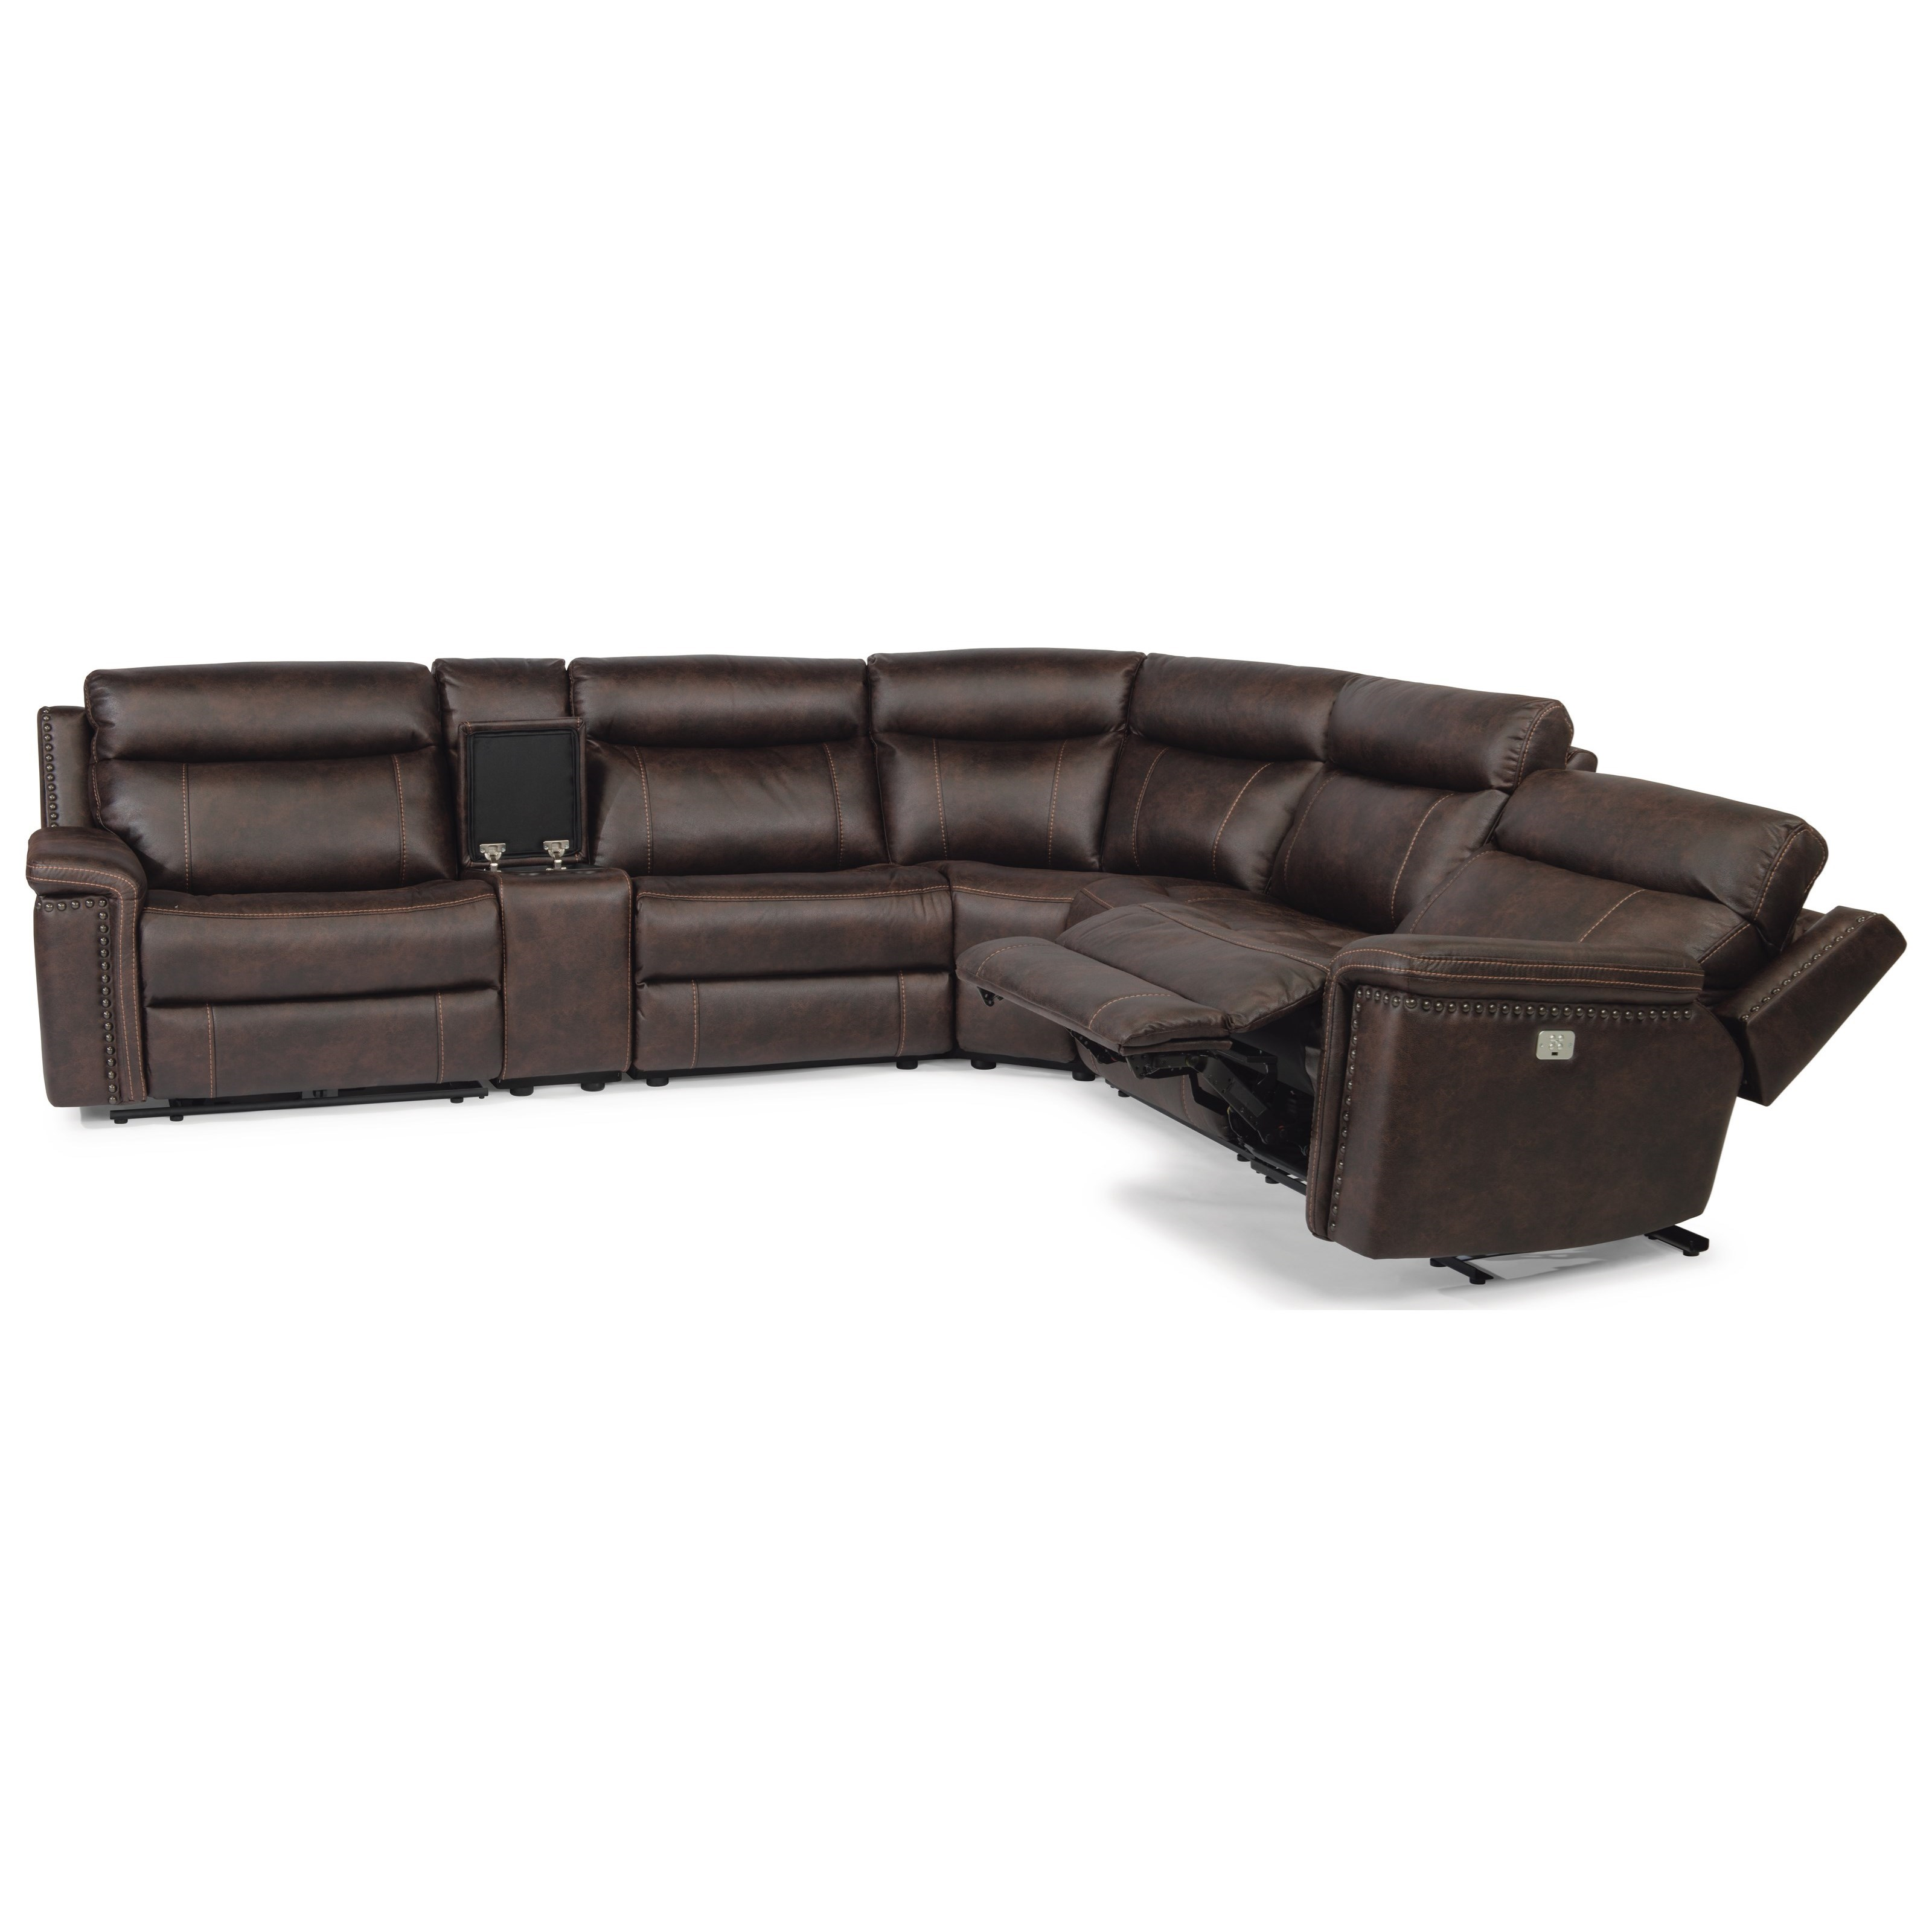 Latitudes - Trevor 6 Piece Reclining Sectional by Flexsteel at Thornton Furniture